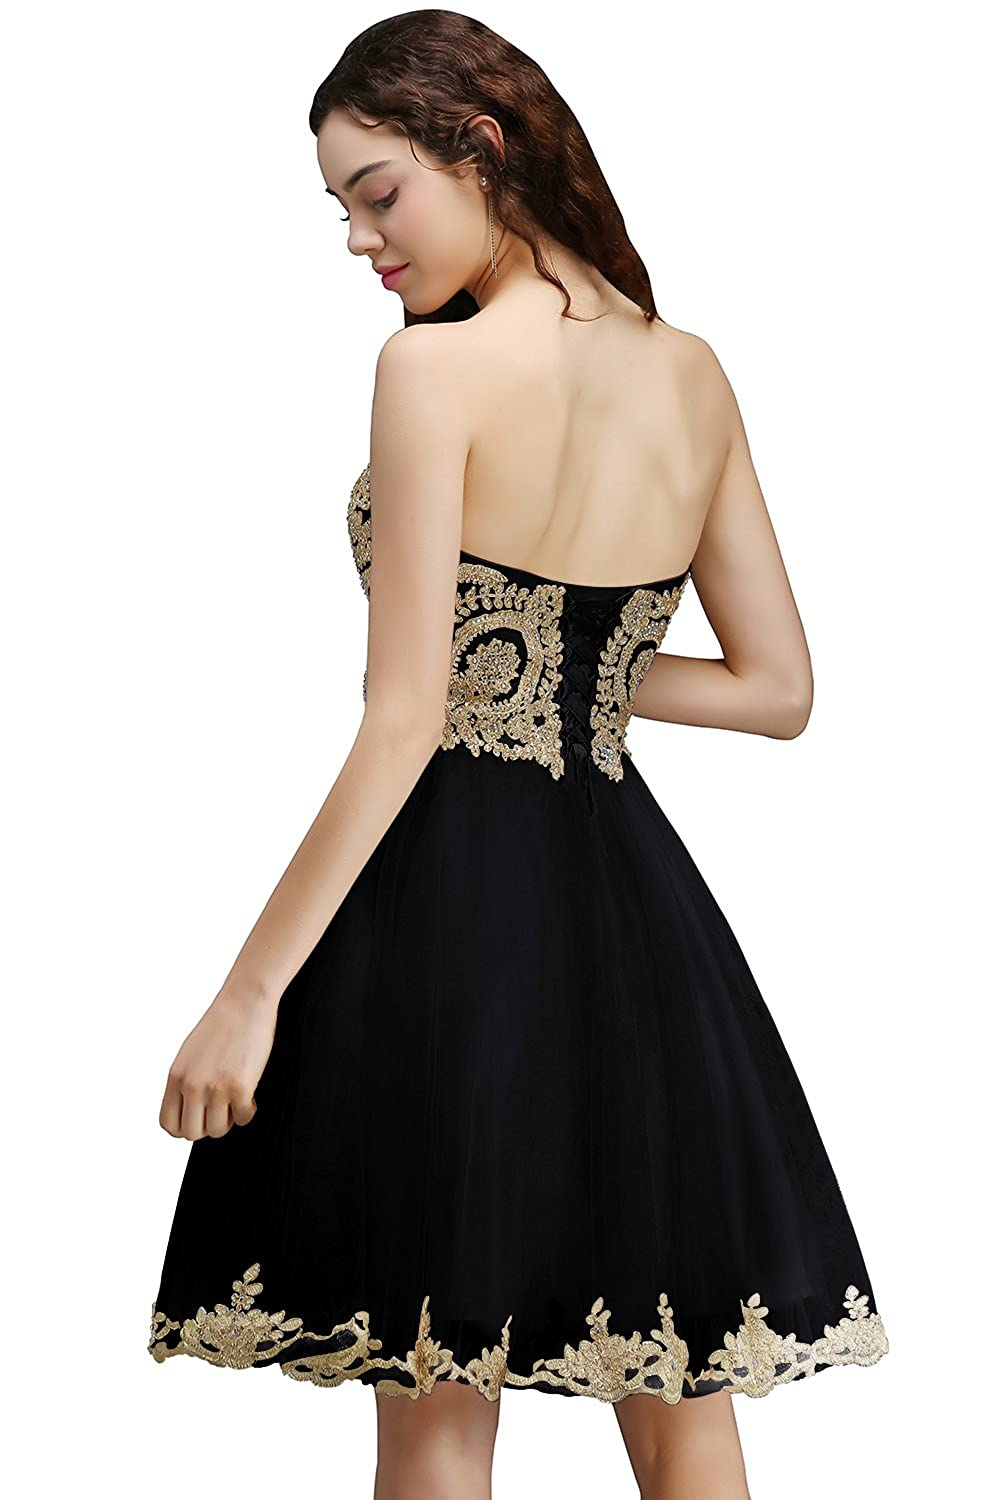 57e70964ba MisShow Gold Rhinestones Lace Homecoming Dresses Short Evening Cocktail  Gowns at Amazon Women s Clothing store